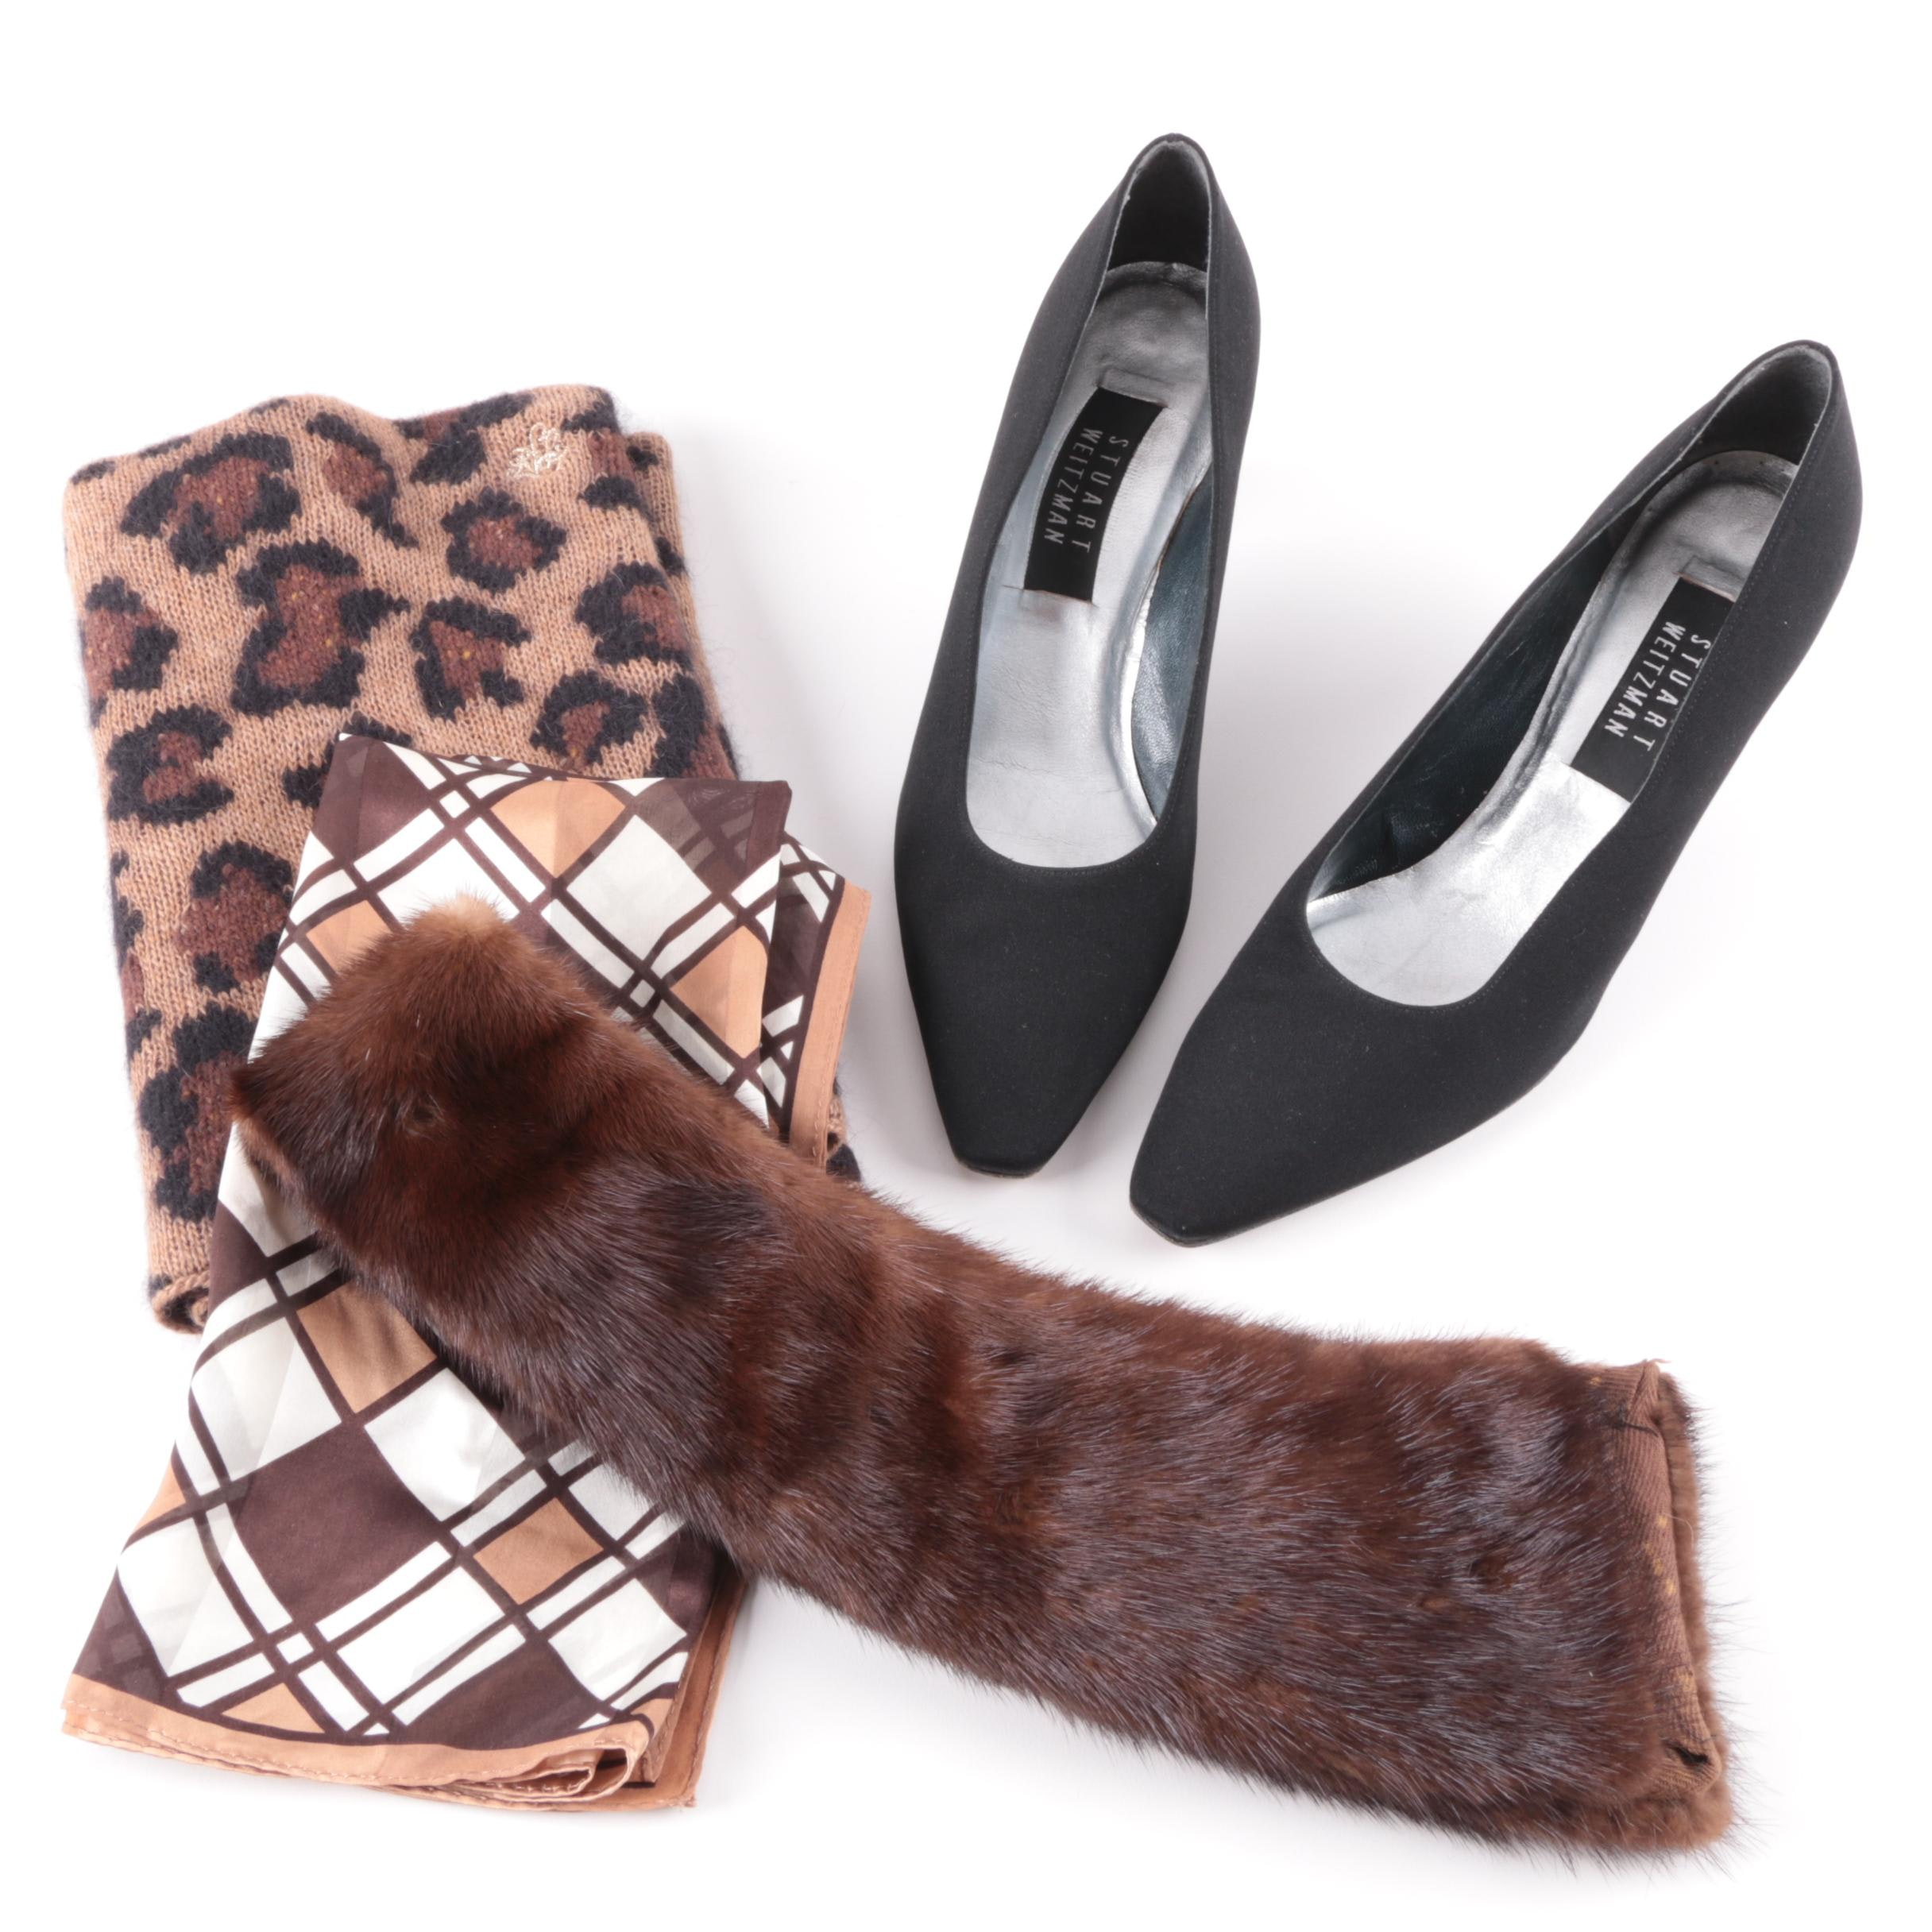 Stuart Weitzman Pumps, Brown Mink Fur Collar and Scarves